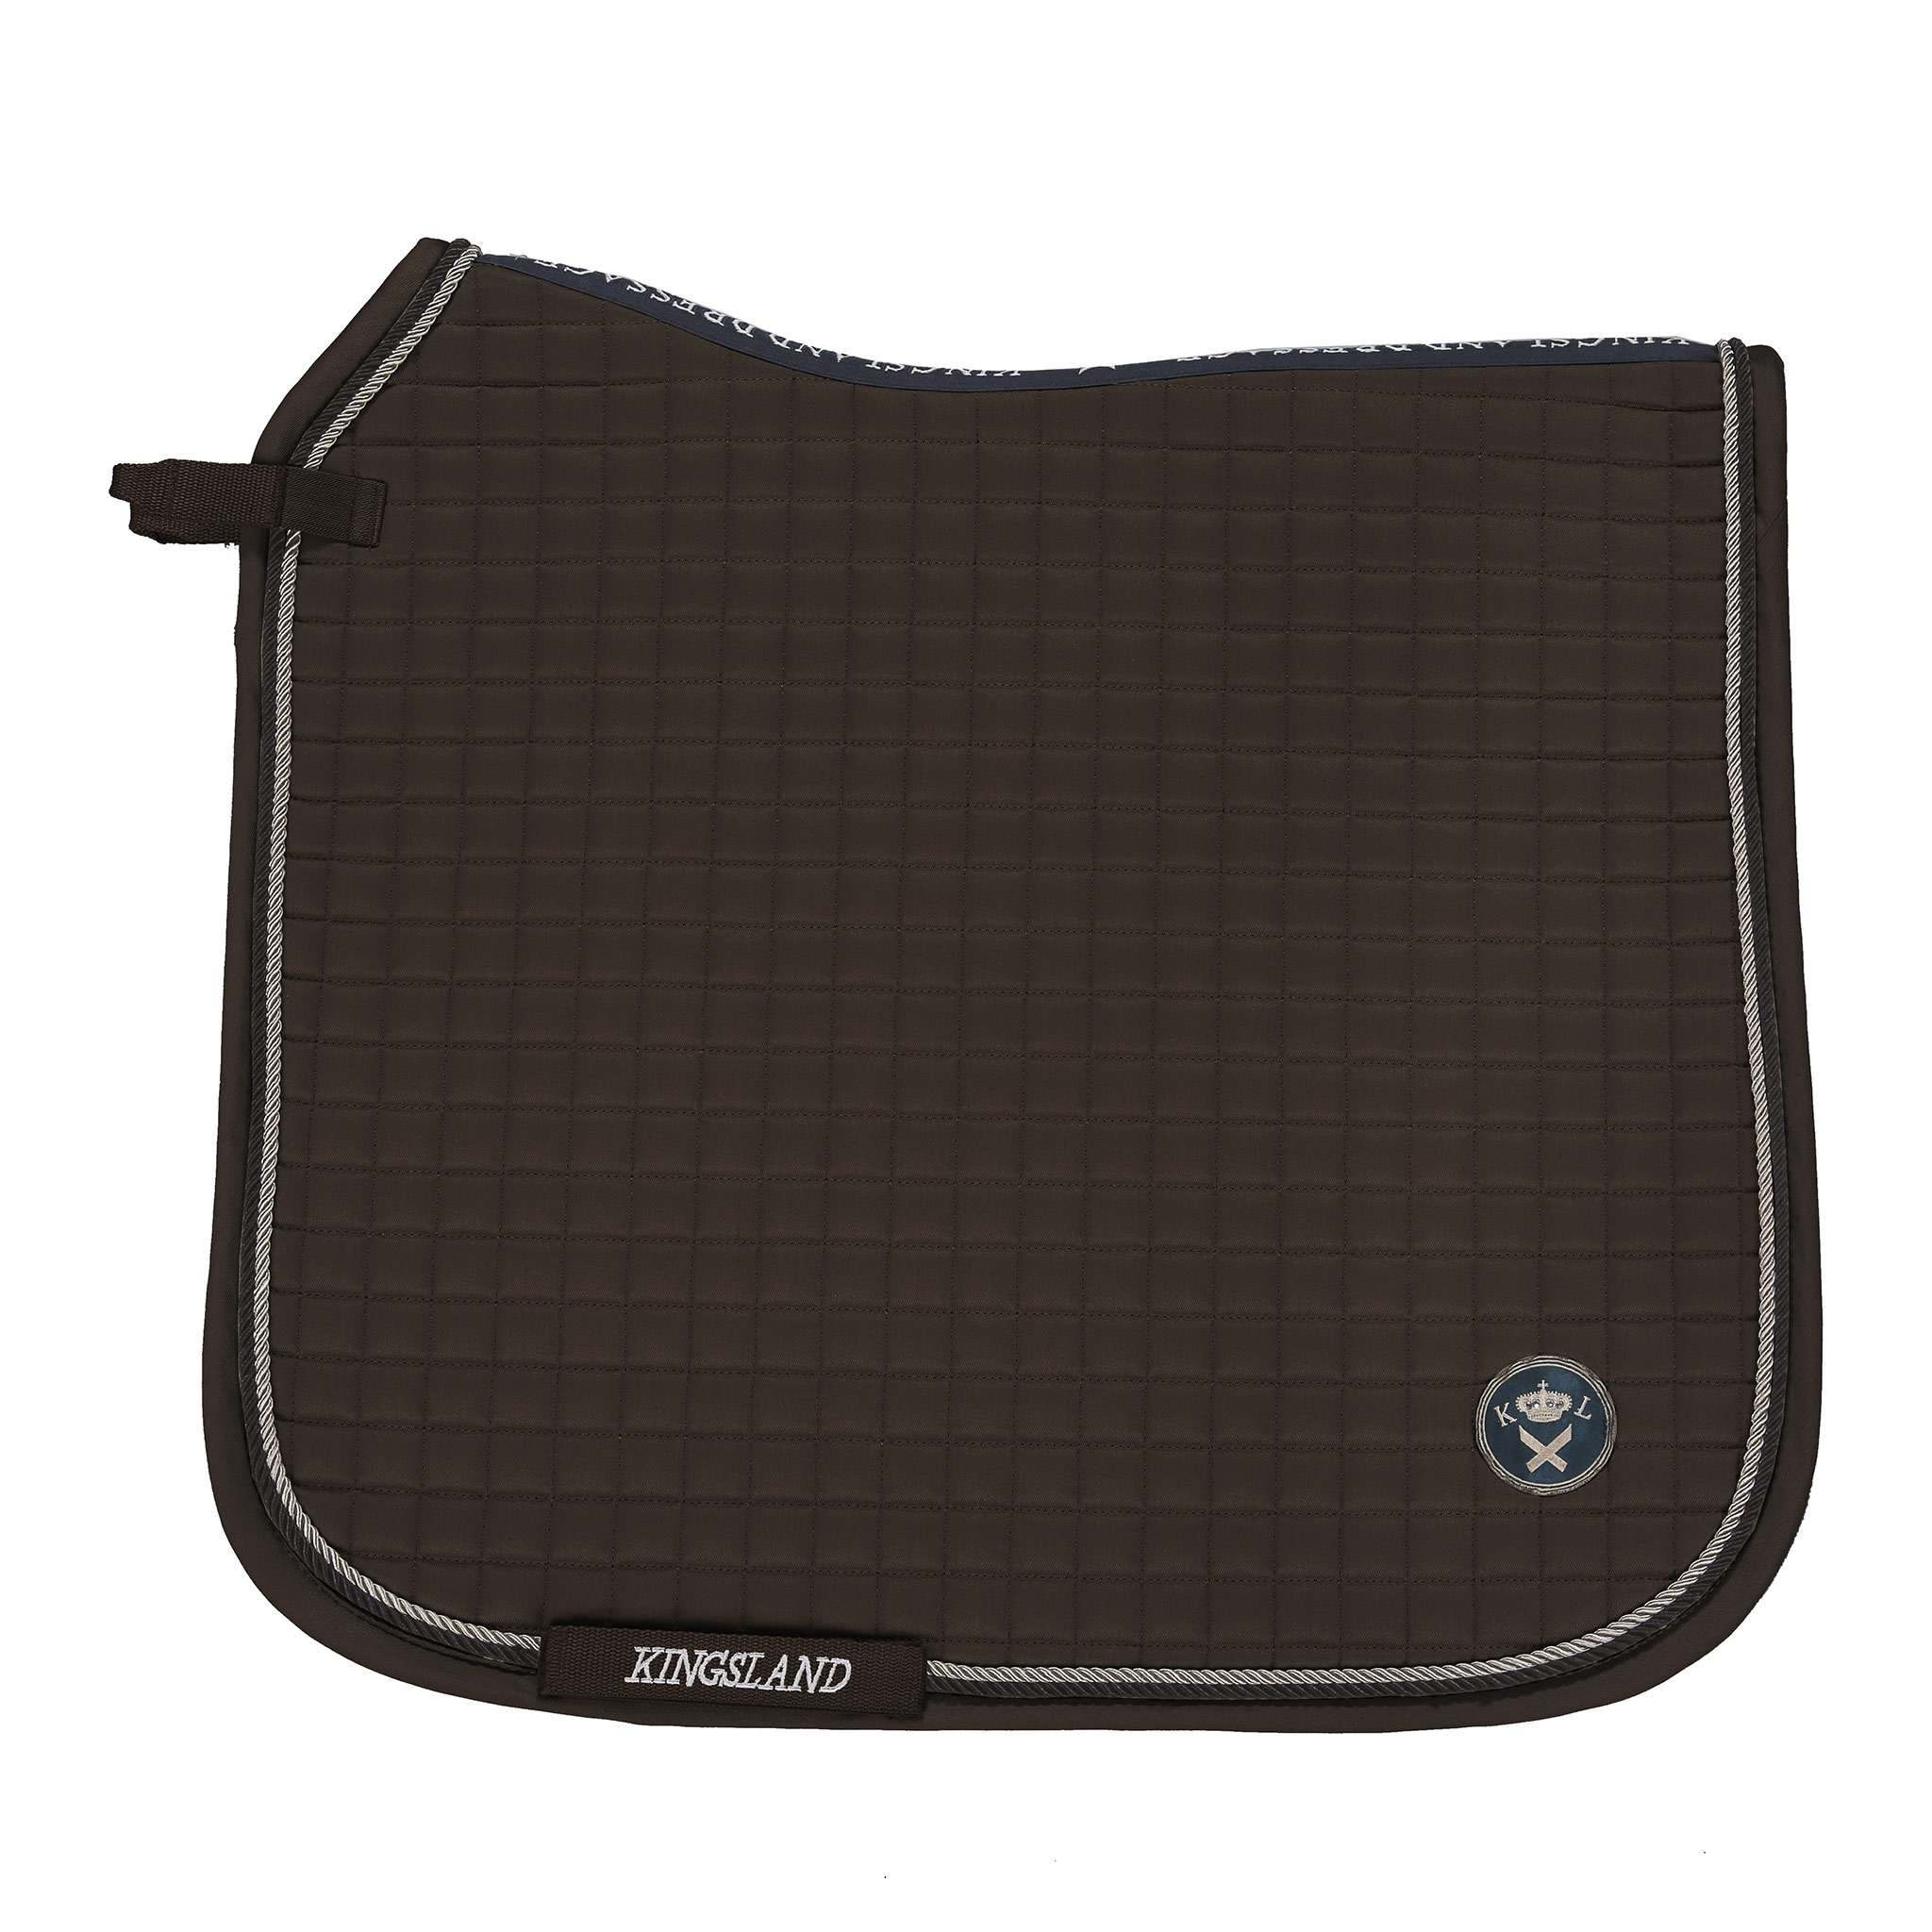 KINGSLAND HAMMERSLEY DRESSAGE FULL SIZE SADDLE PAD